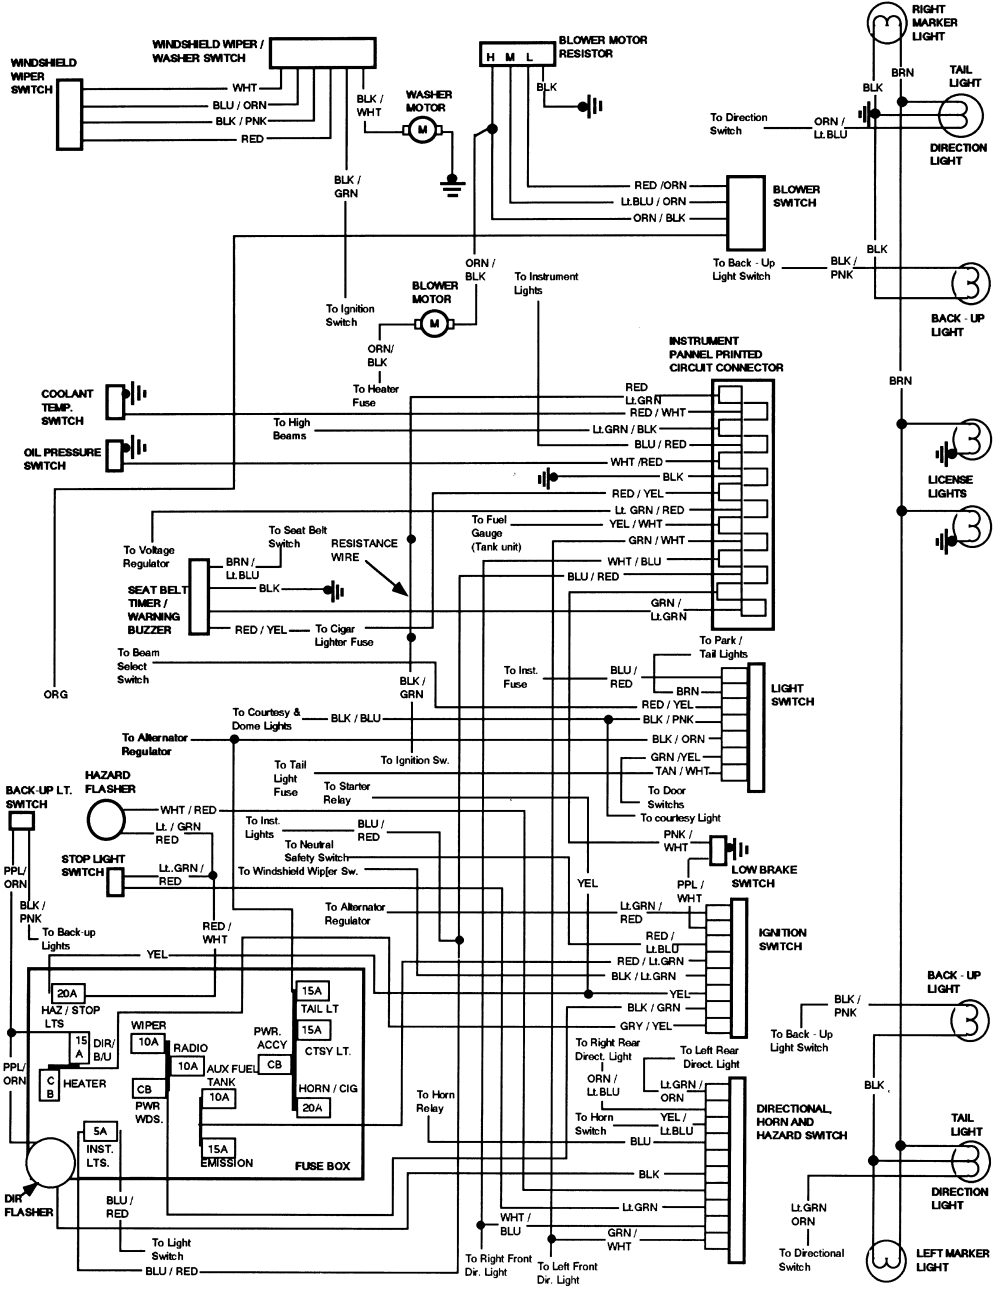 Diagram  1966 Gmc Ignition System Wiring Diagram Full Version Hd Quality Wiring Diagram